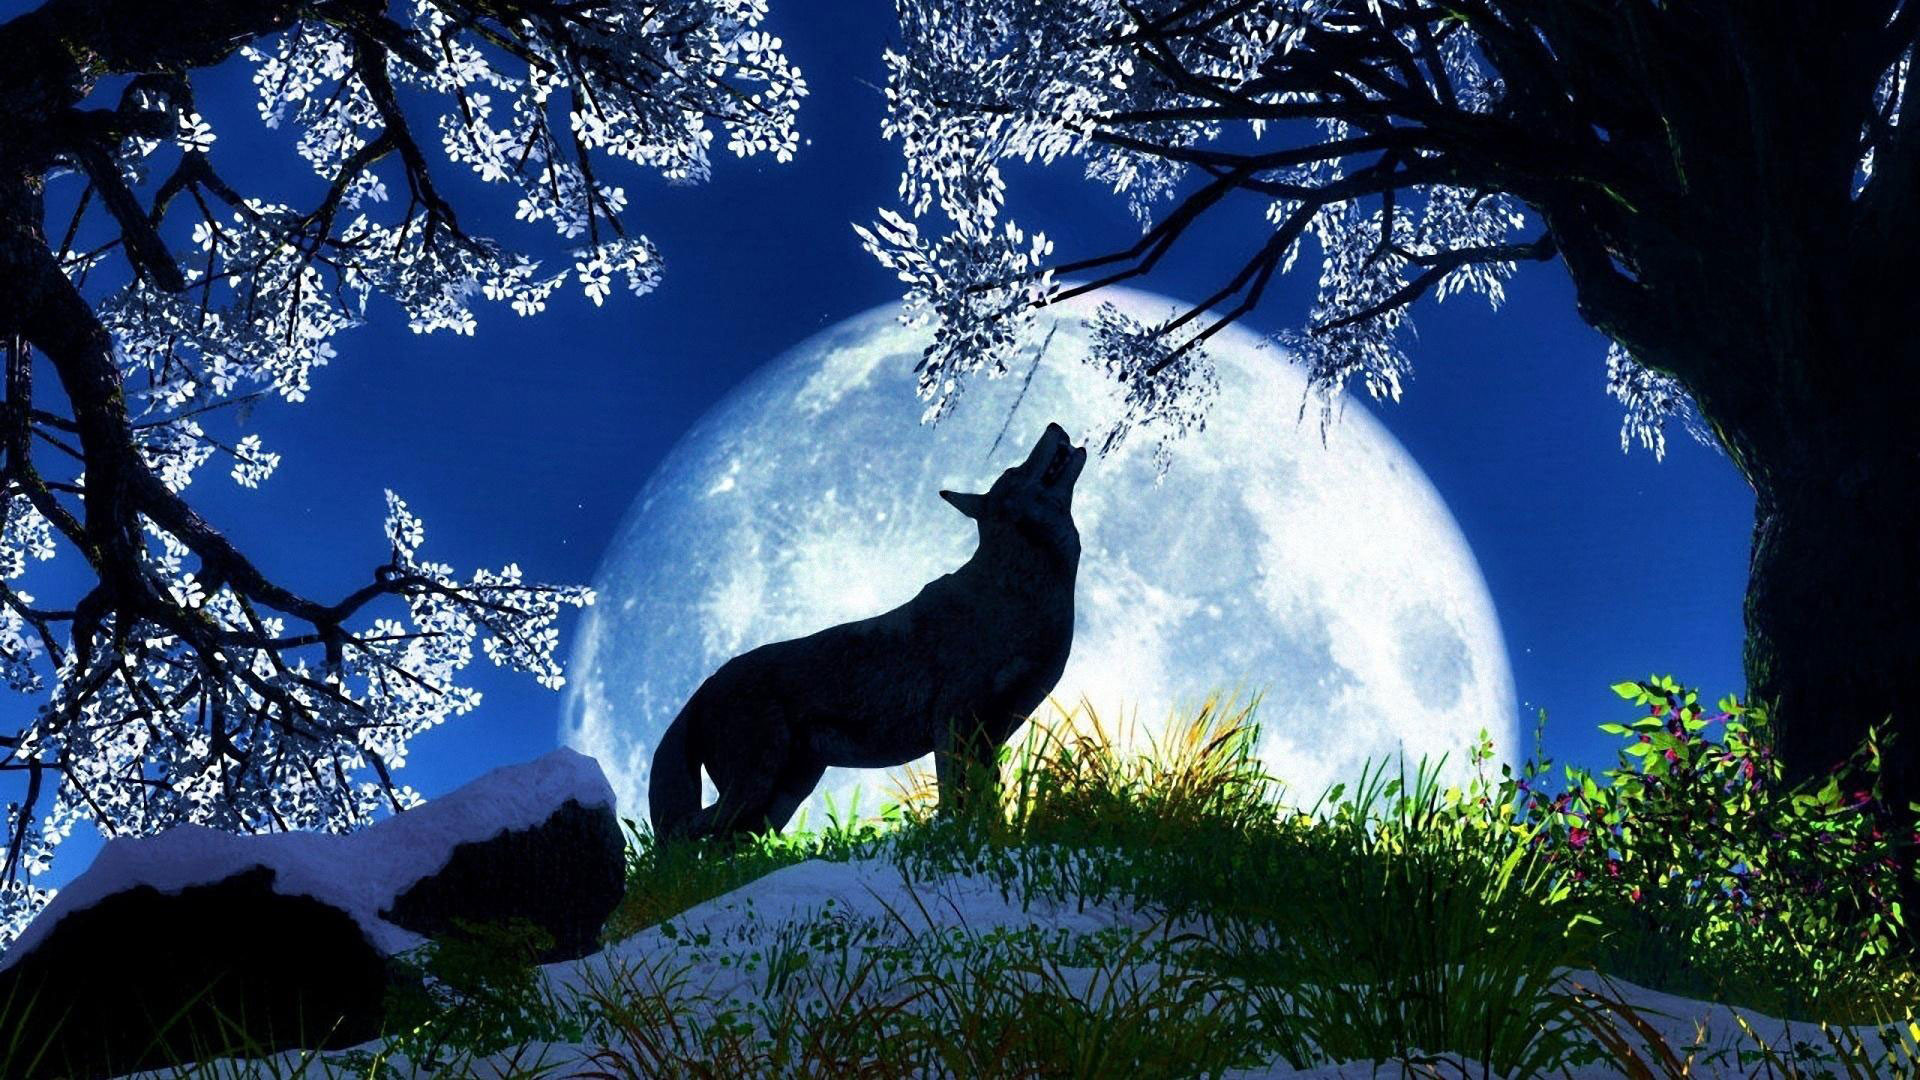 hd pics photos stunning howling wolf fantasy moon animated hd quality desktop  background wallpaper